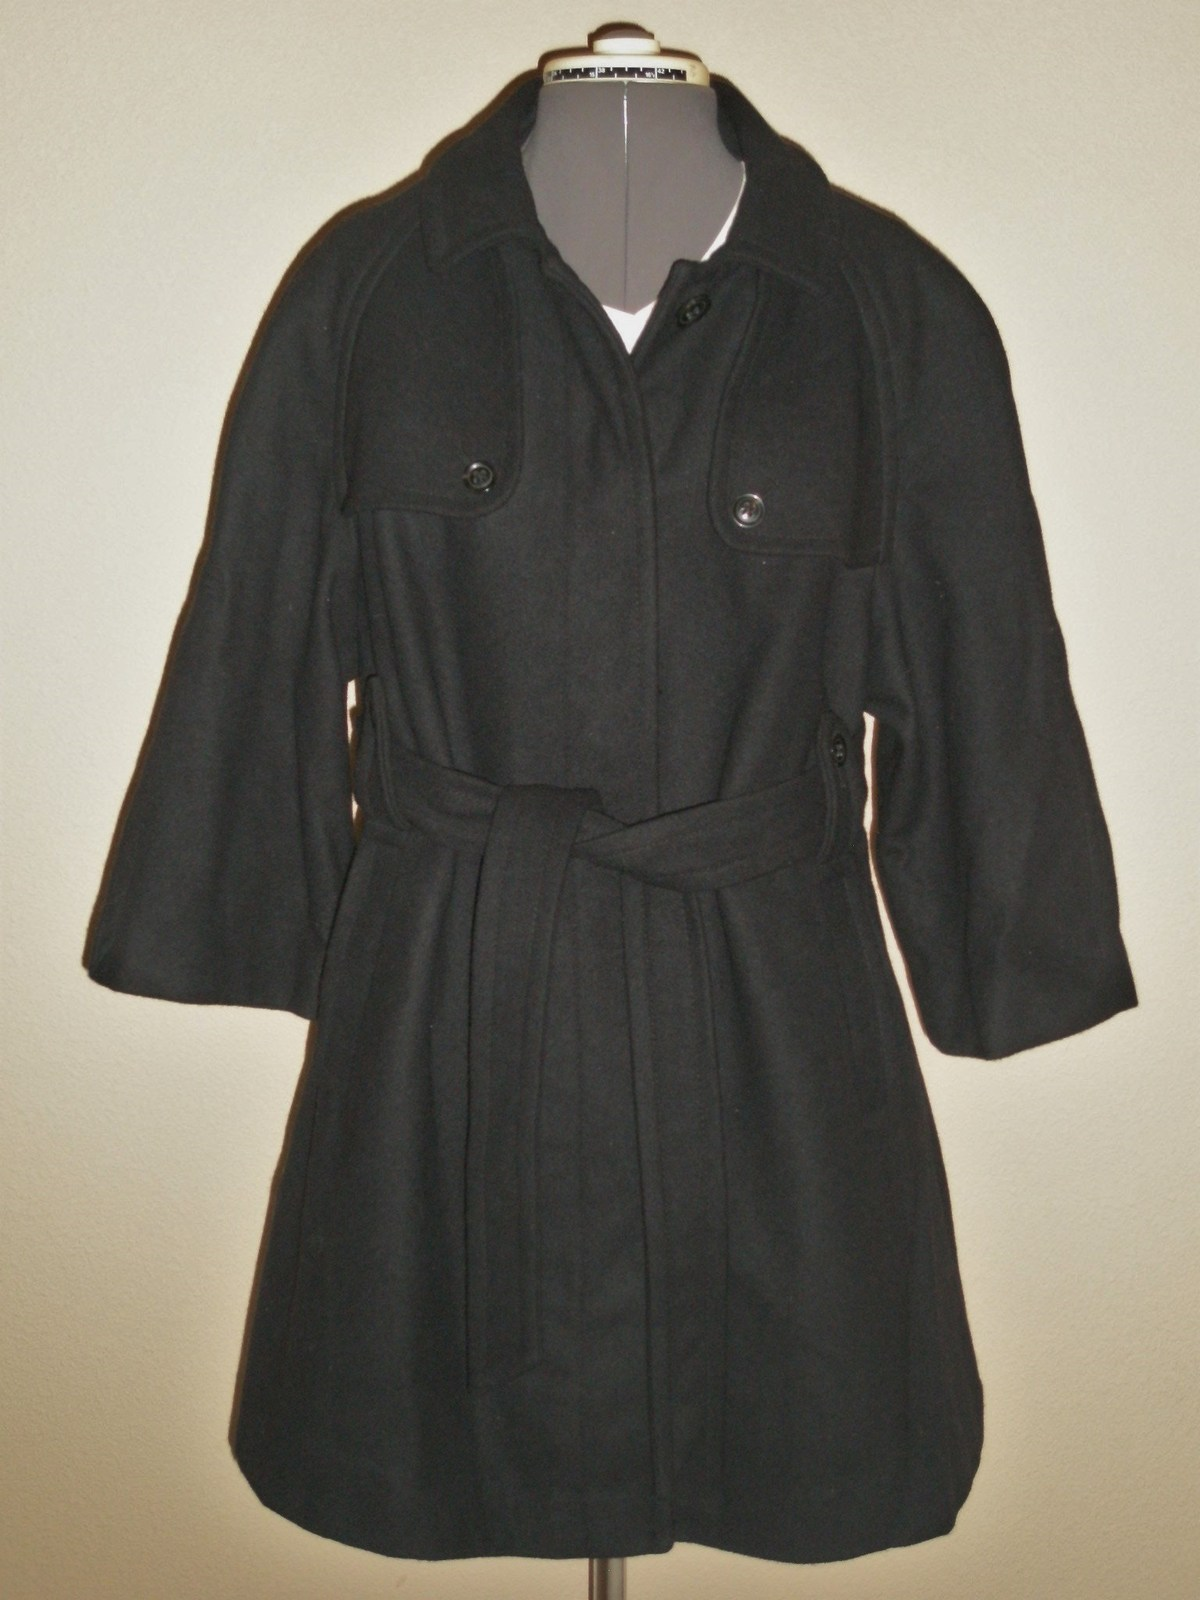 Shop eBay for great deals on A Pea in the Pod Maternity Coats & Jackets. You'll find new or used products in A Pea in the Pod Maternity Coats & Jackets on eBay. Free shipping on selected items. Great condition A Pea In The Pod Belted Down Maternity Jacket Small. $ 0 bids. $ shipping. Ending Oct 1 at AM PDT 4d 5h.